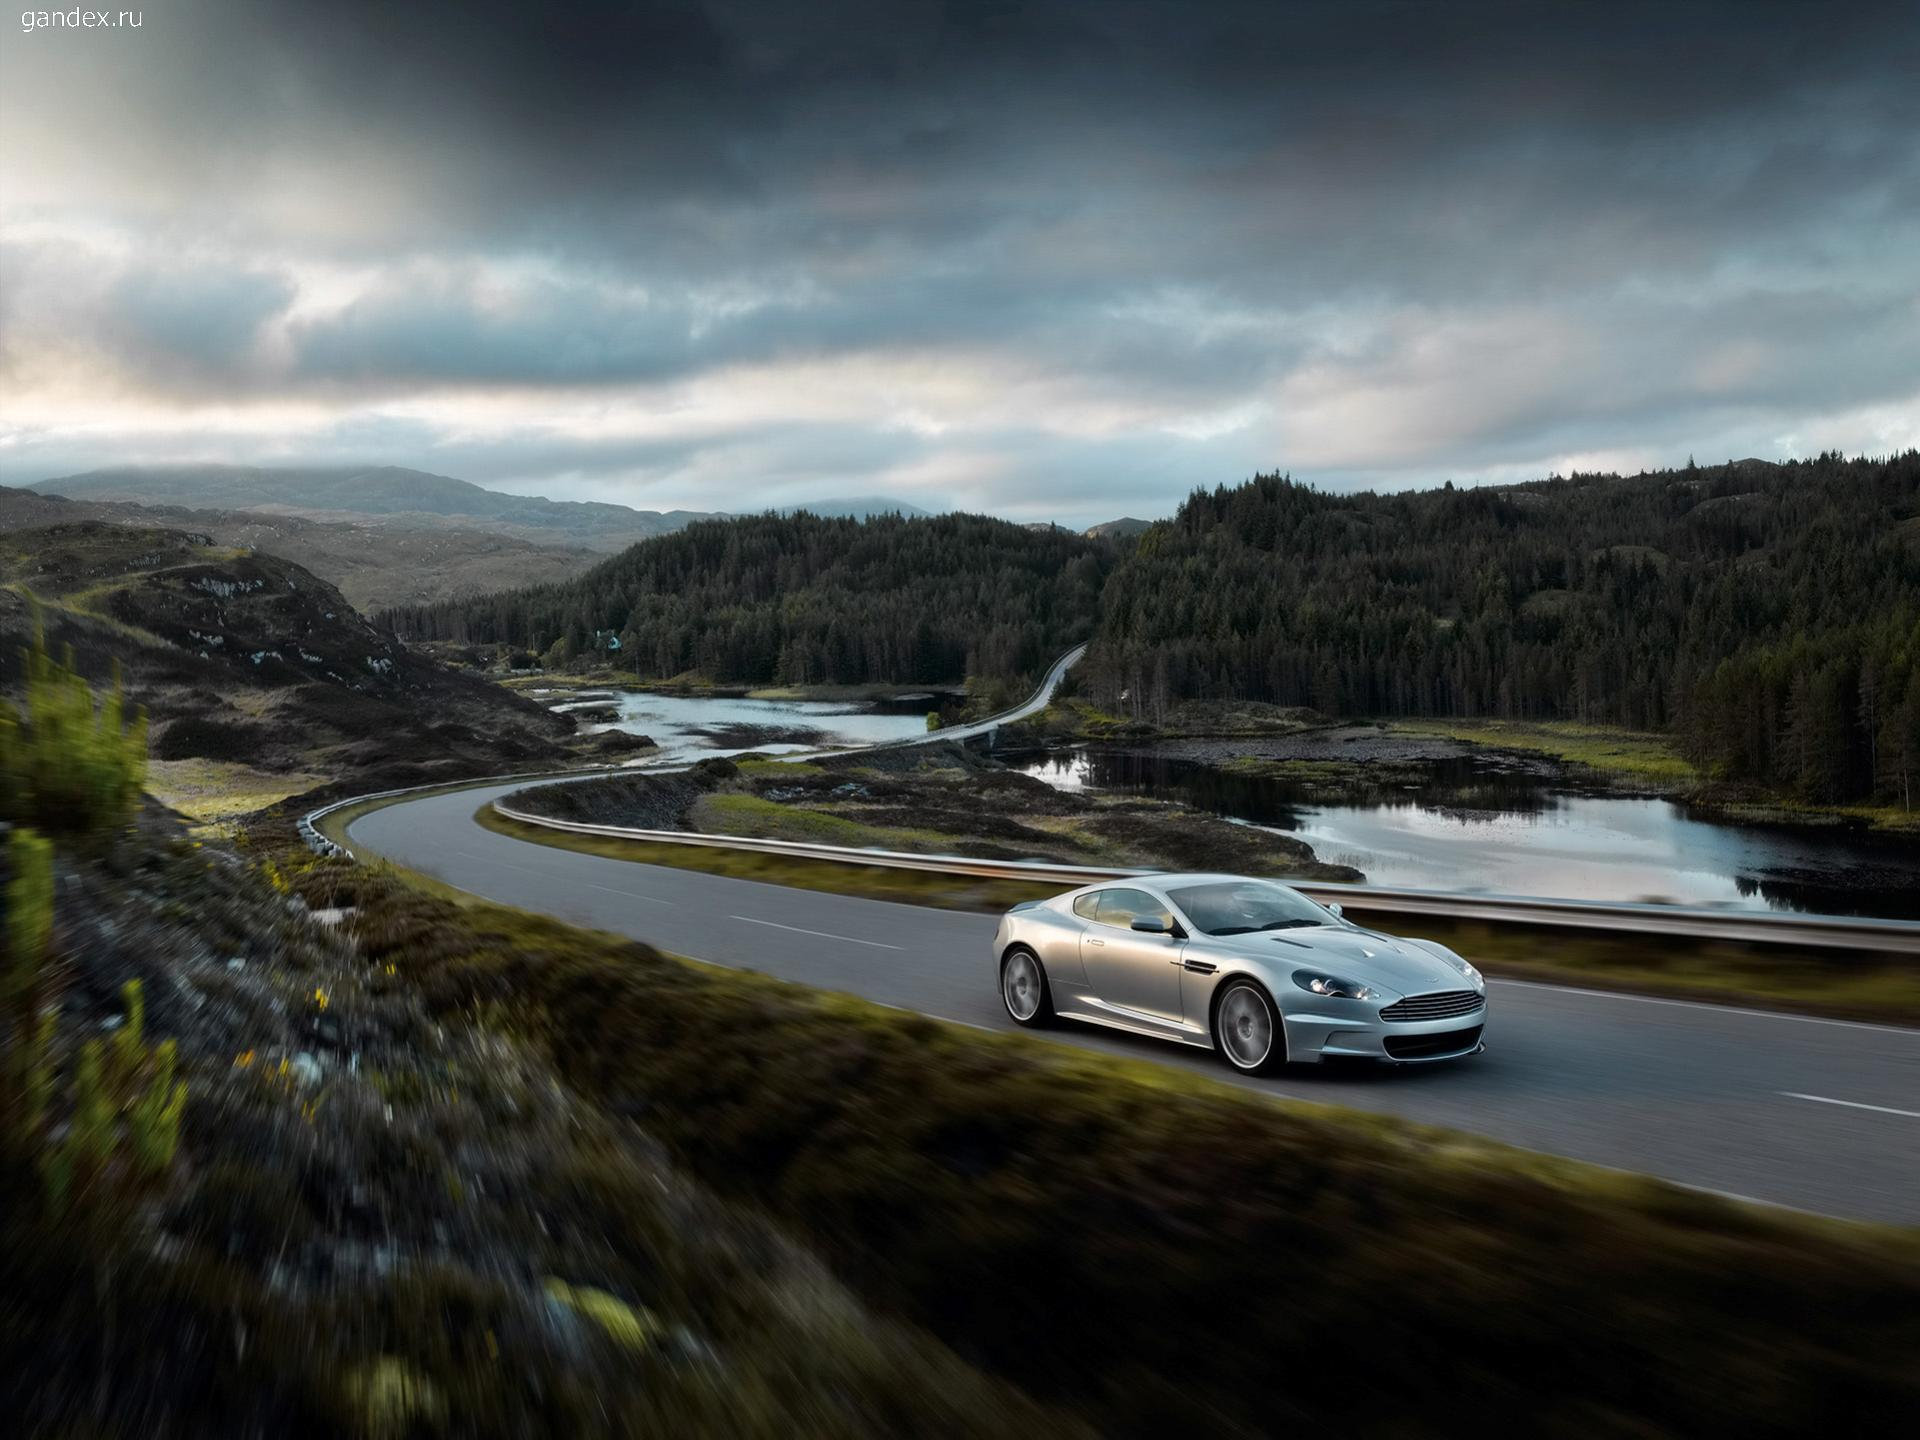 Aston Martin on the road against the background of the forest and the lake.